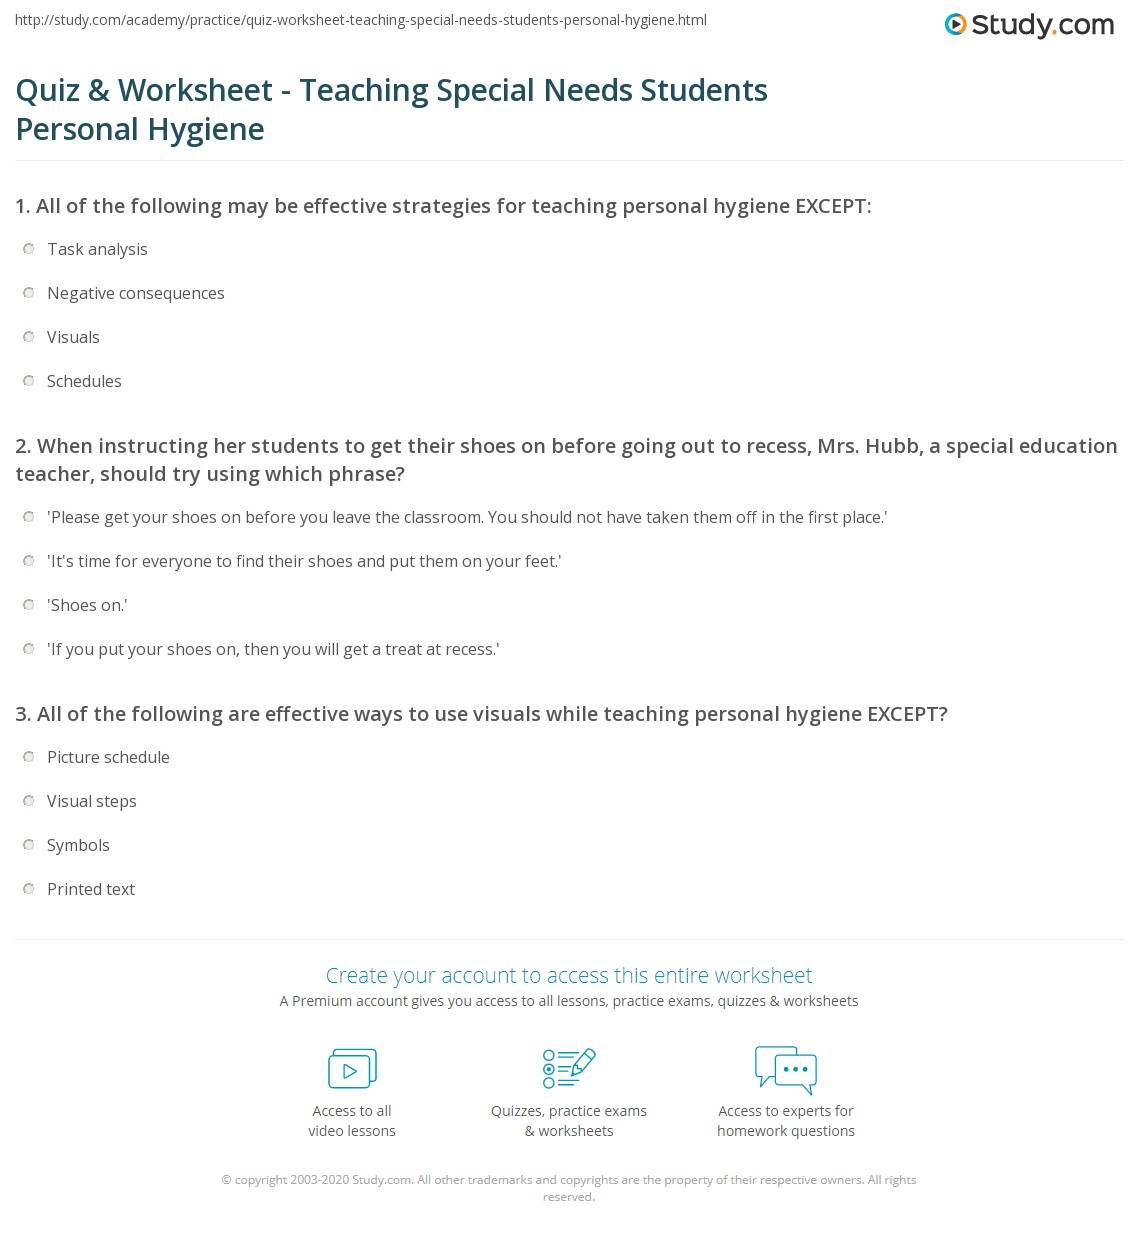 Worksheets Hygiene Worksheets quiz worksheet teaching special needs students personal print hygiene to with worksheet